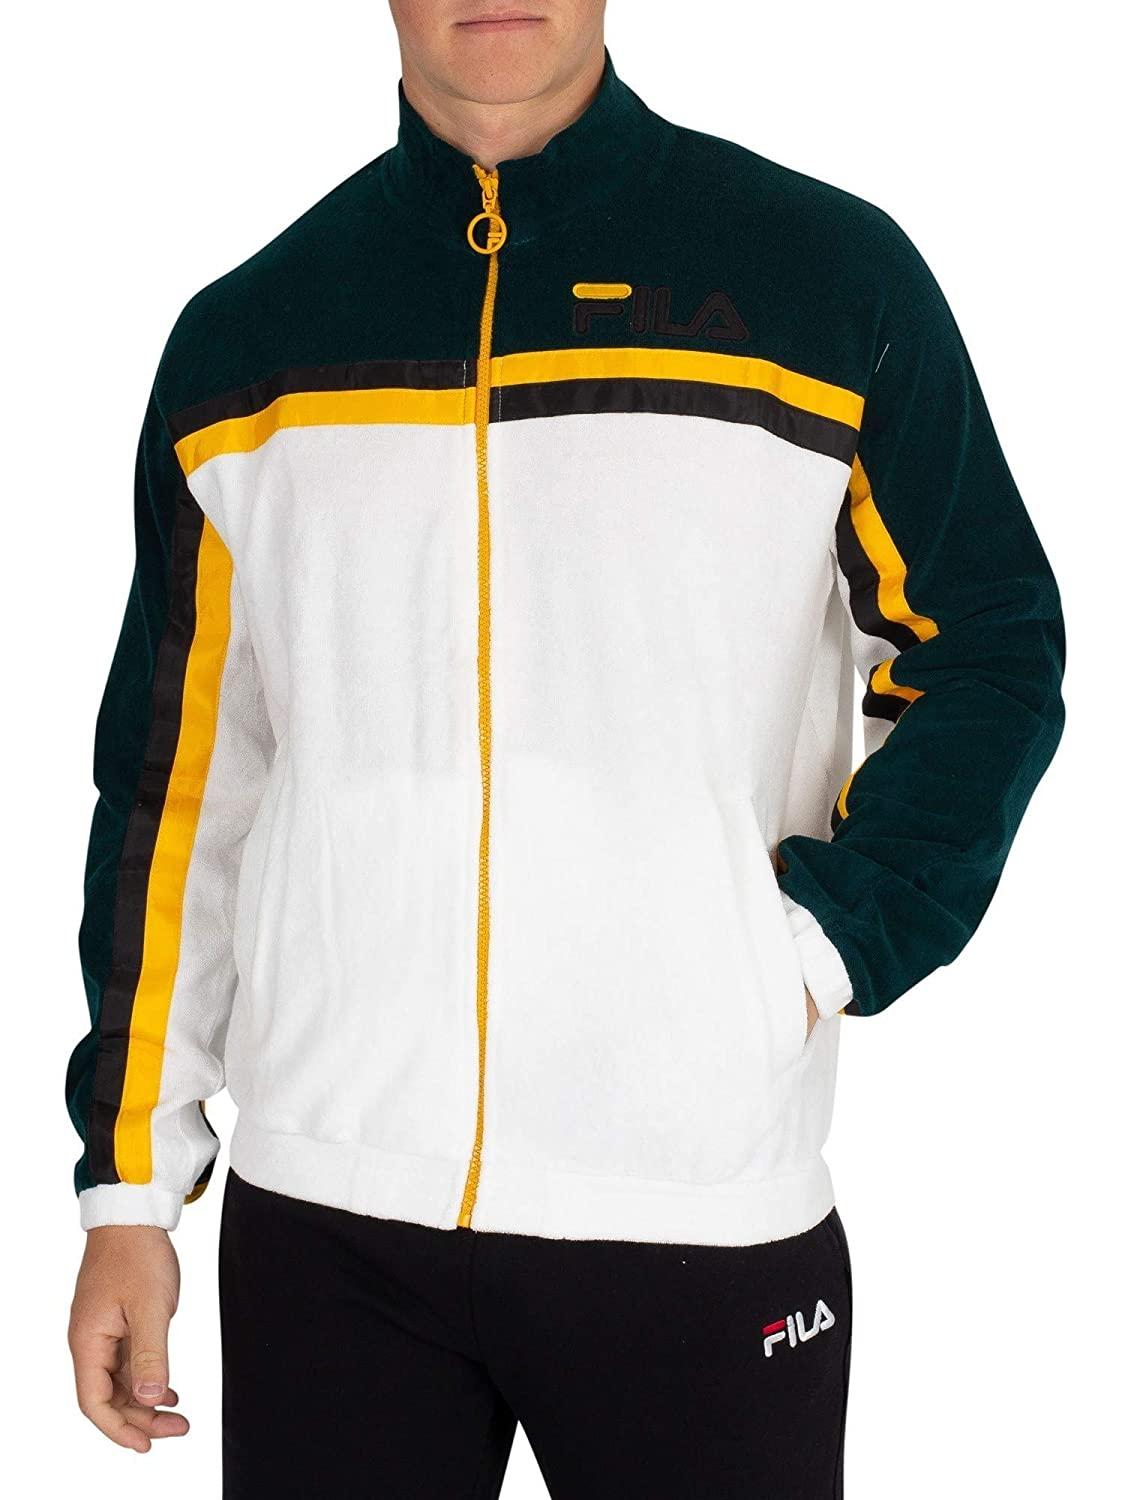 Fila Vintage Men's Ethan Terry Towelling Track Jacket, White